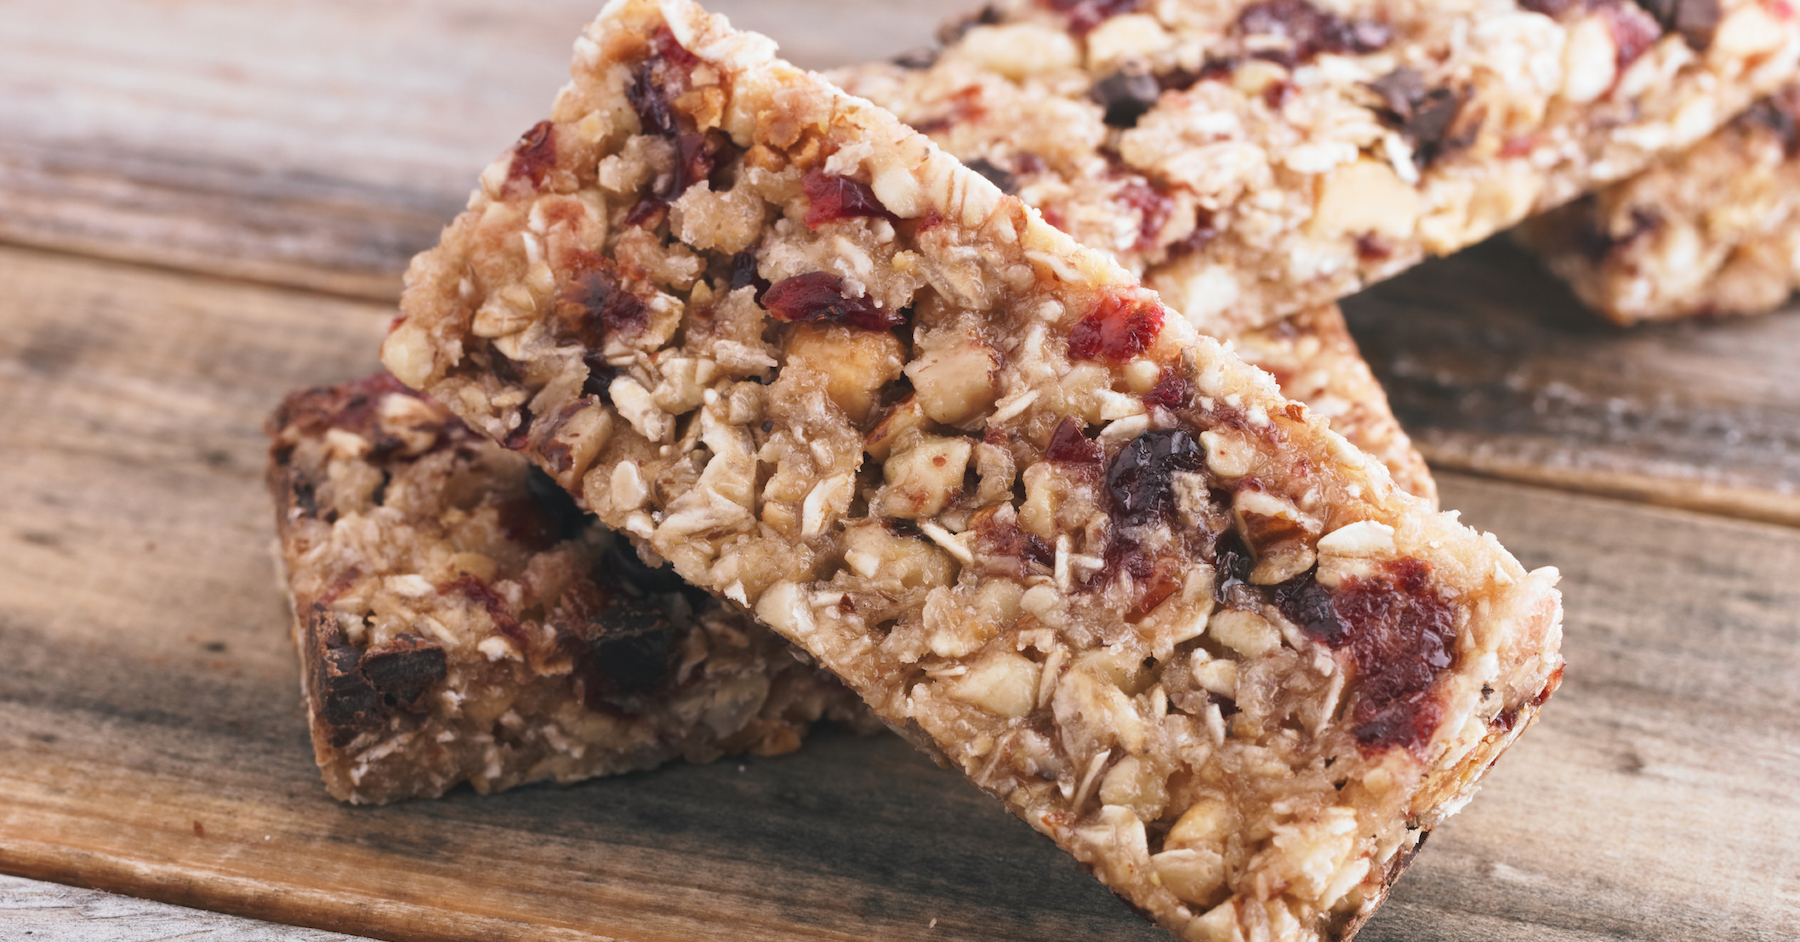 Healthy granola bars 15 granola bars that are actually healthy healthy granola bars 15 granola bars that are actually healthy greatist ccuart Image collections